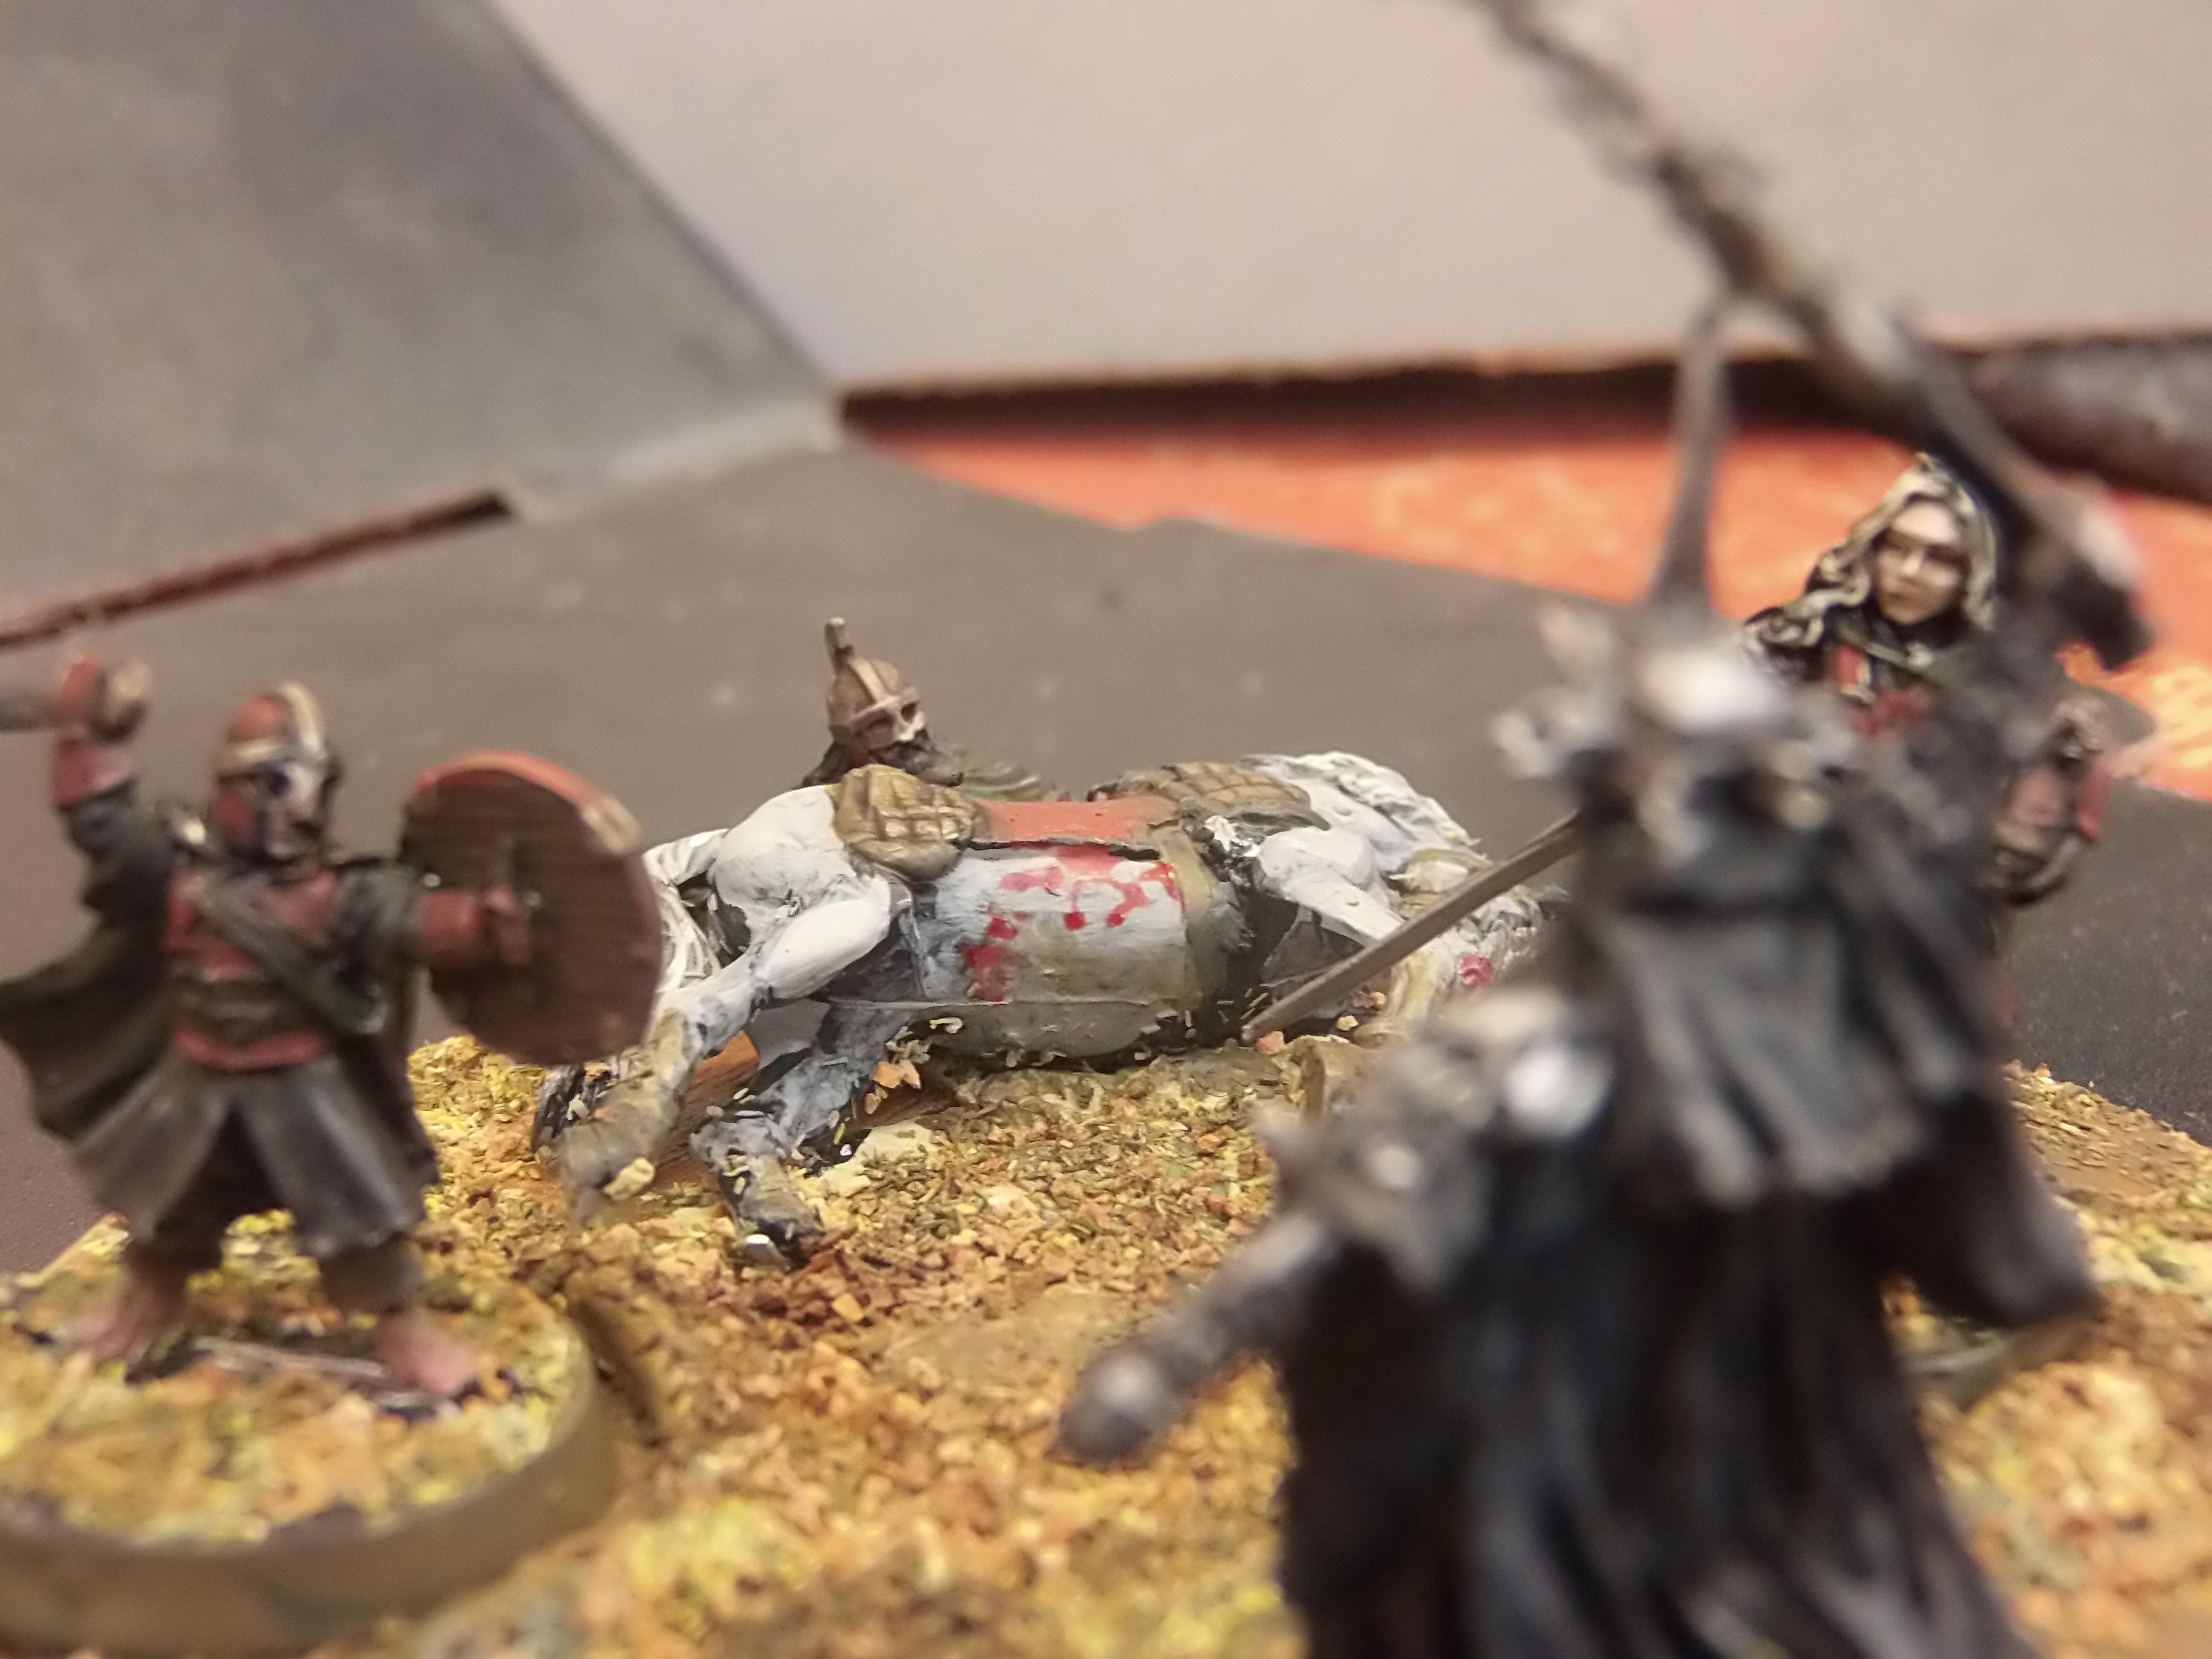 Diorama, Display, Eowyn, Hobbit, Lord Of The Rings, Nazgul, Return Of The King, Ringwraith, Rohan, Tolkien